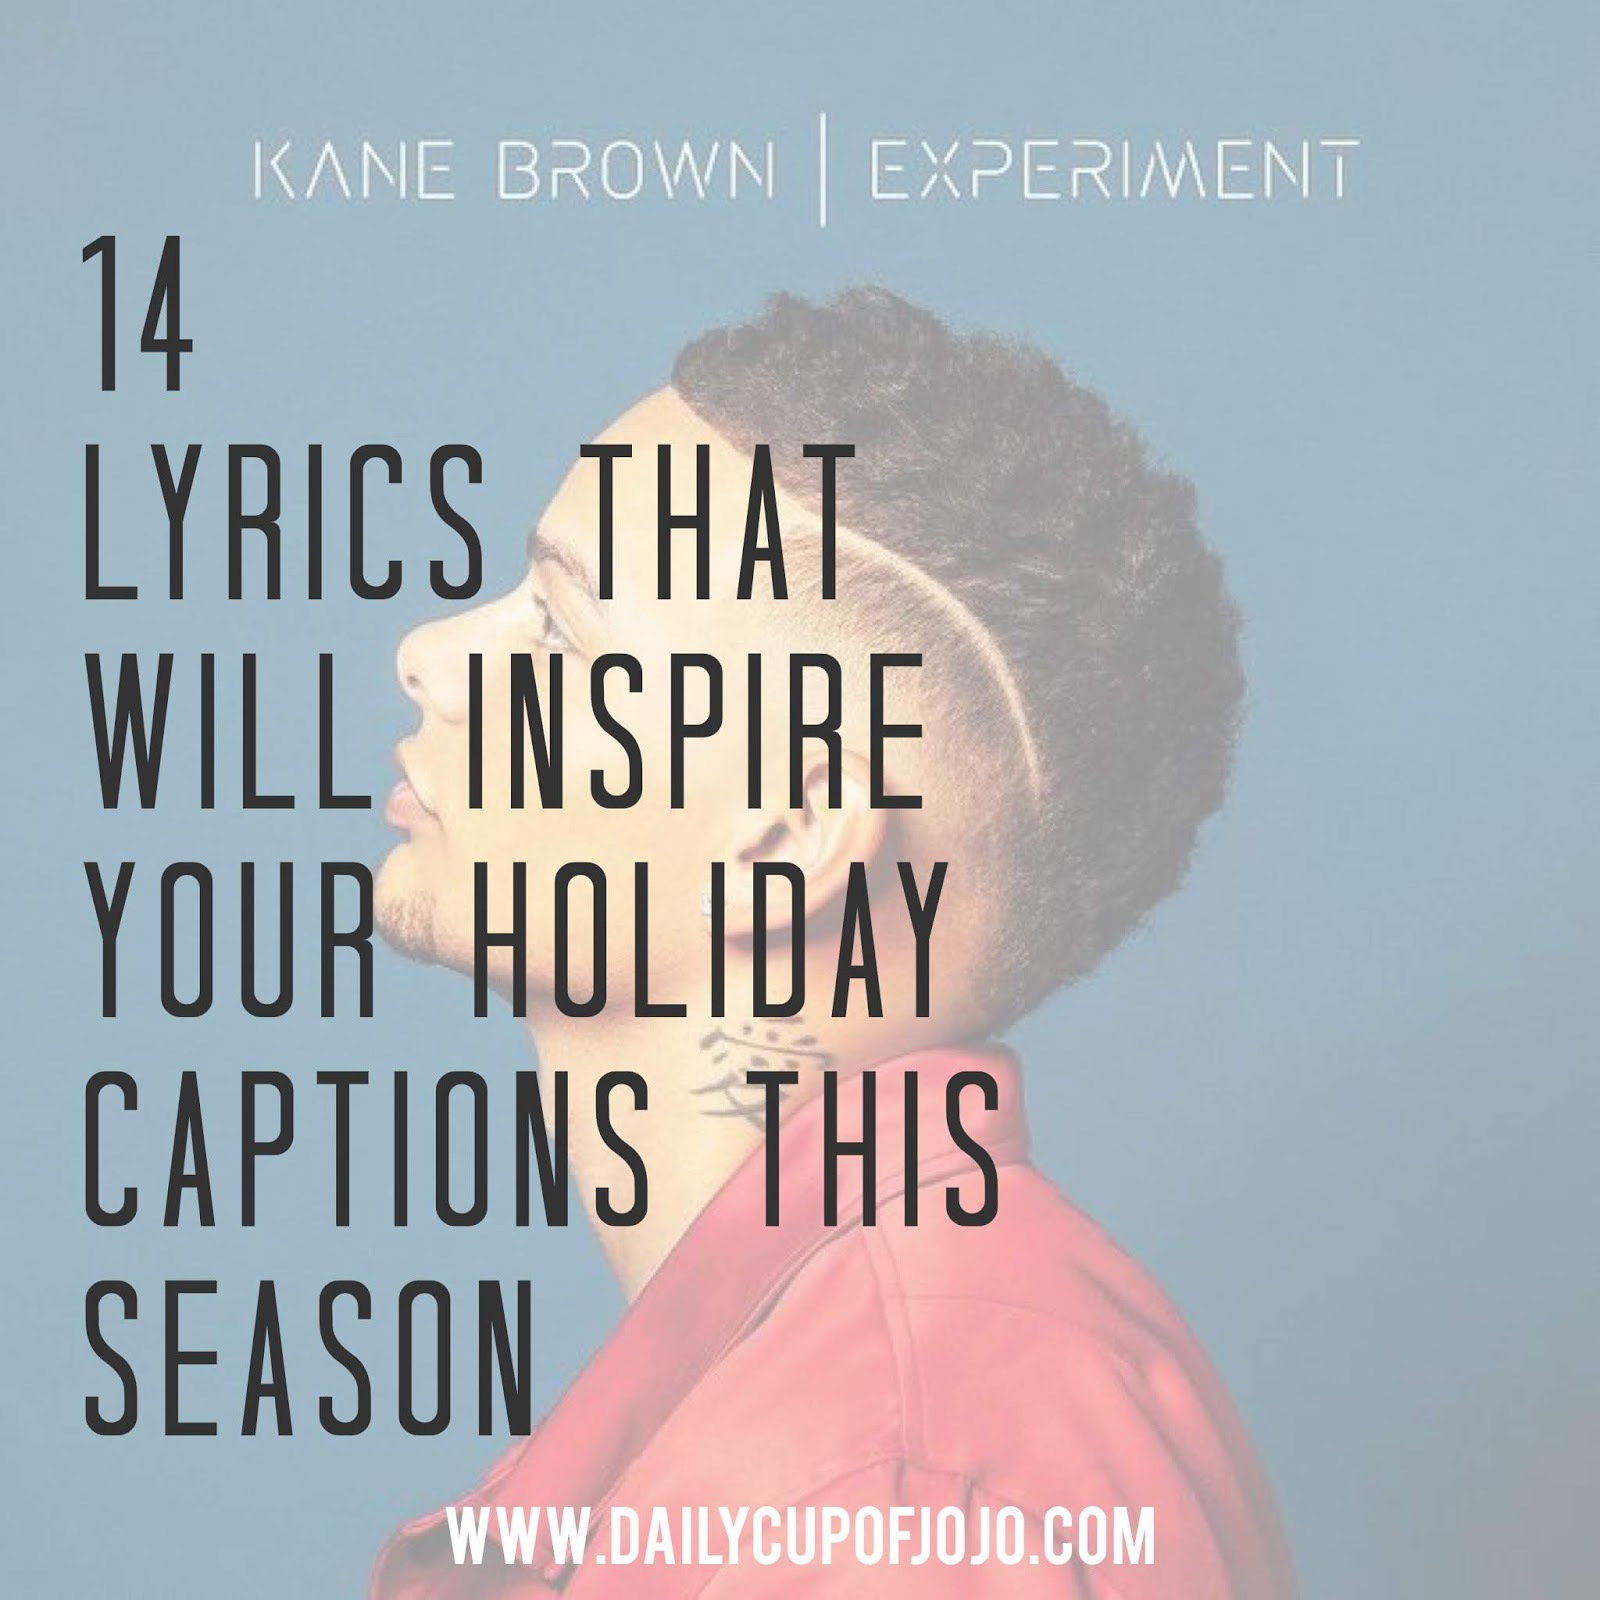 14 Kane Brown Experiment Lyrics That Will Inspire Your Holiday